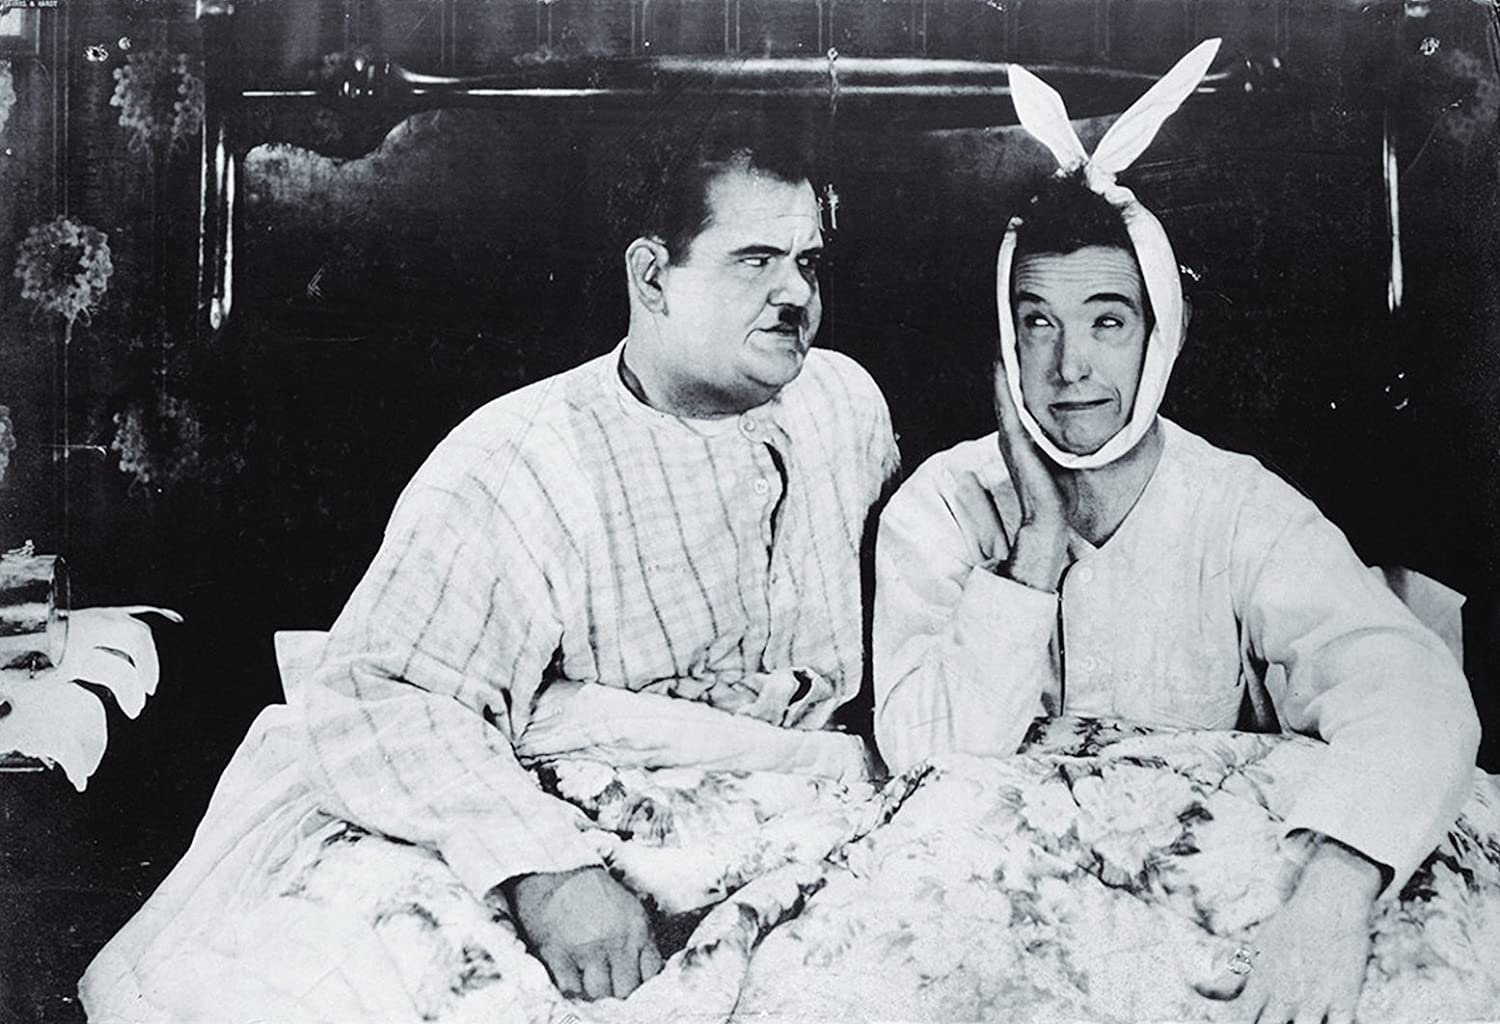 Laurel and Hardy Poster as seen in Joey and Chandlers Apartment – Laurel and Hardy Birthday Cards